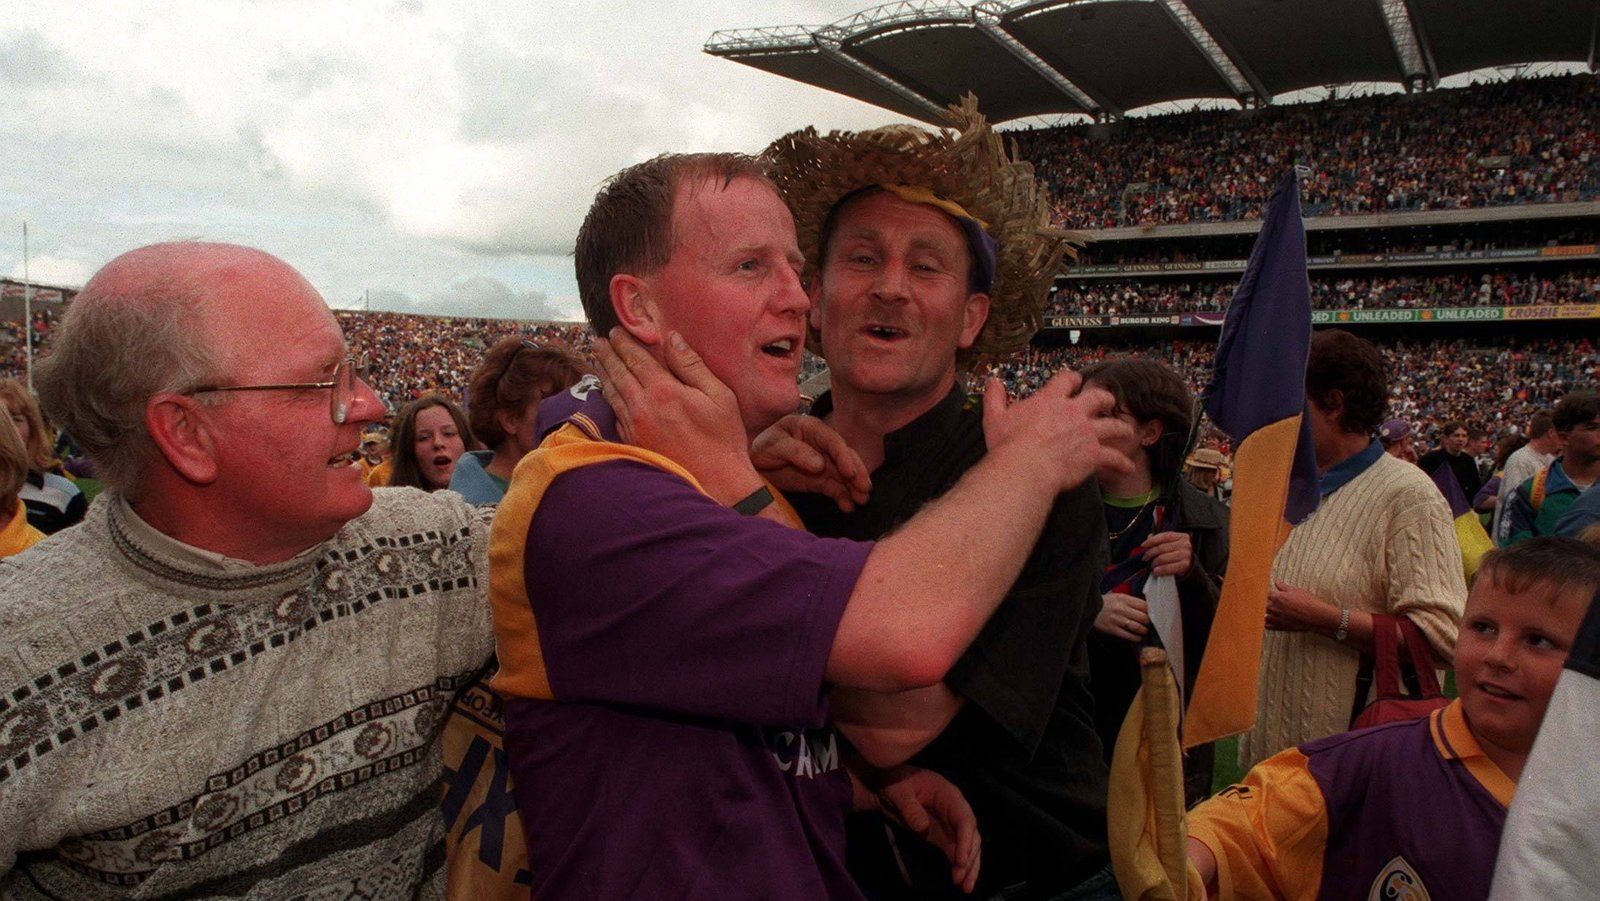 Image - Tom Dempsey is congratulated by fans after Wexford's Leinster final victory in 1997